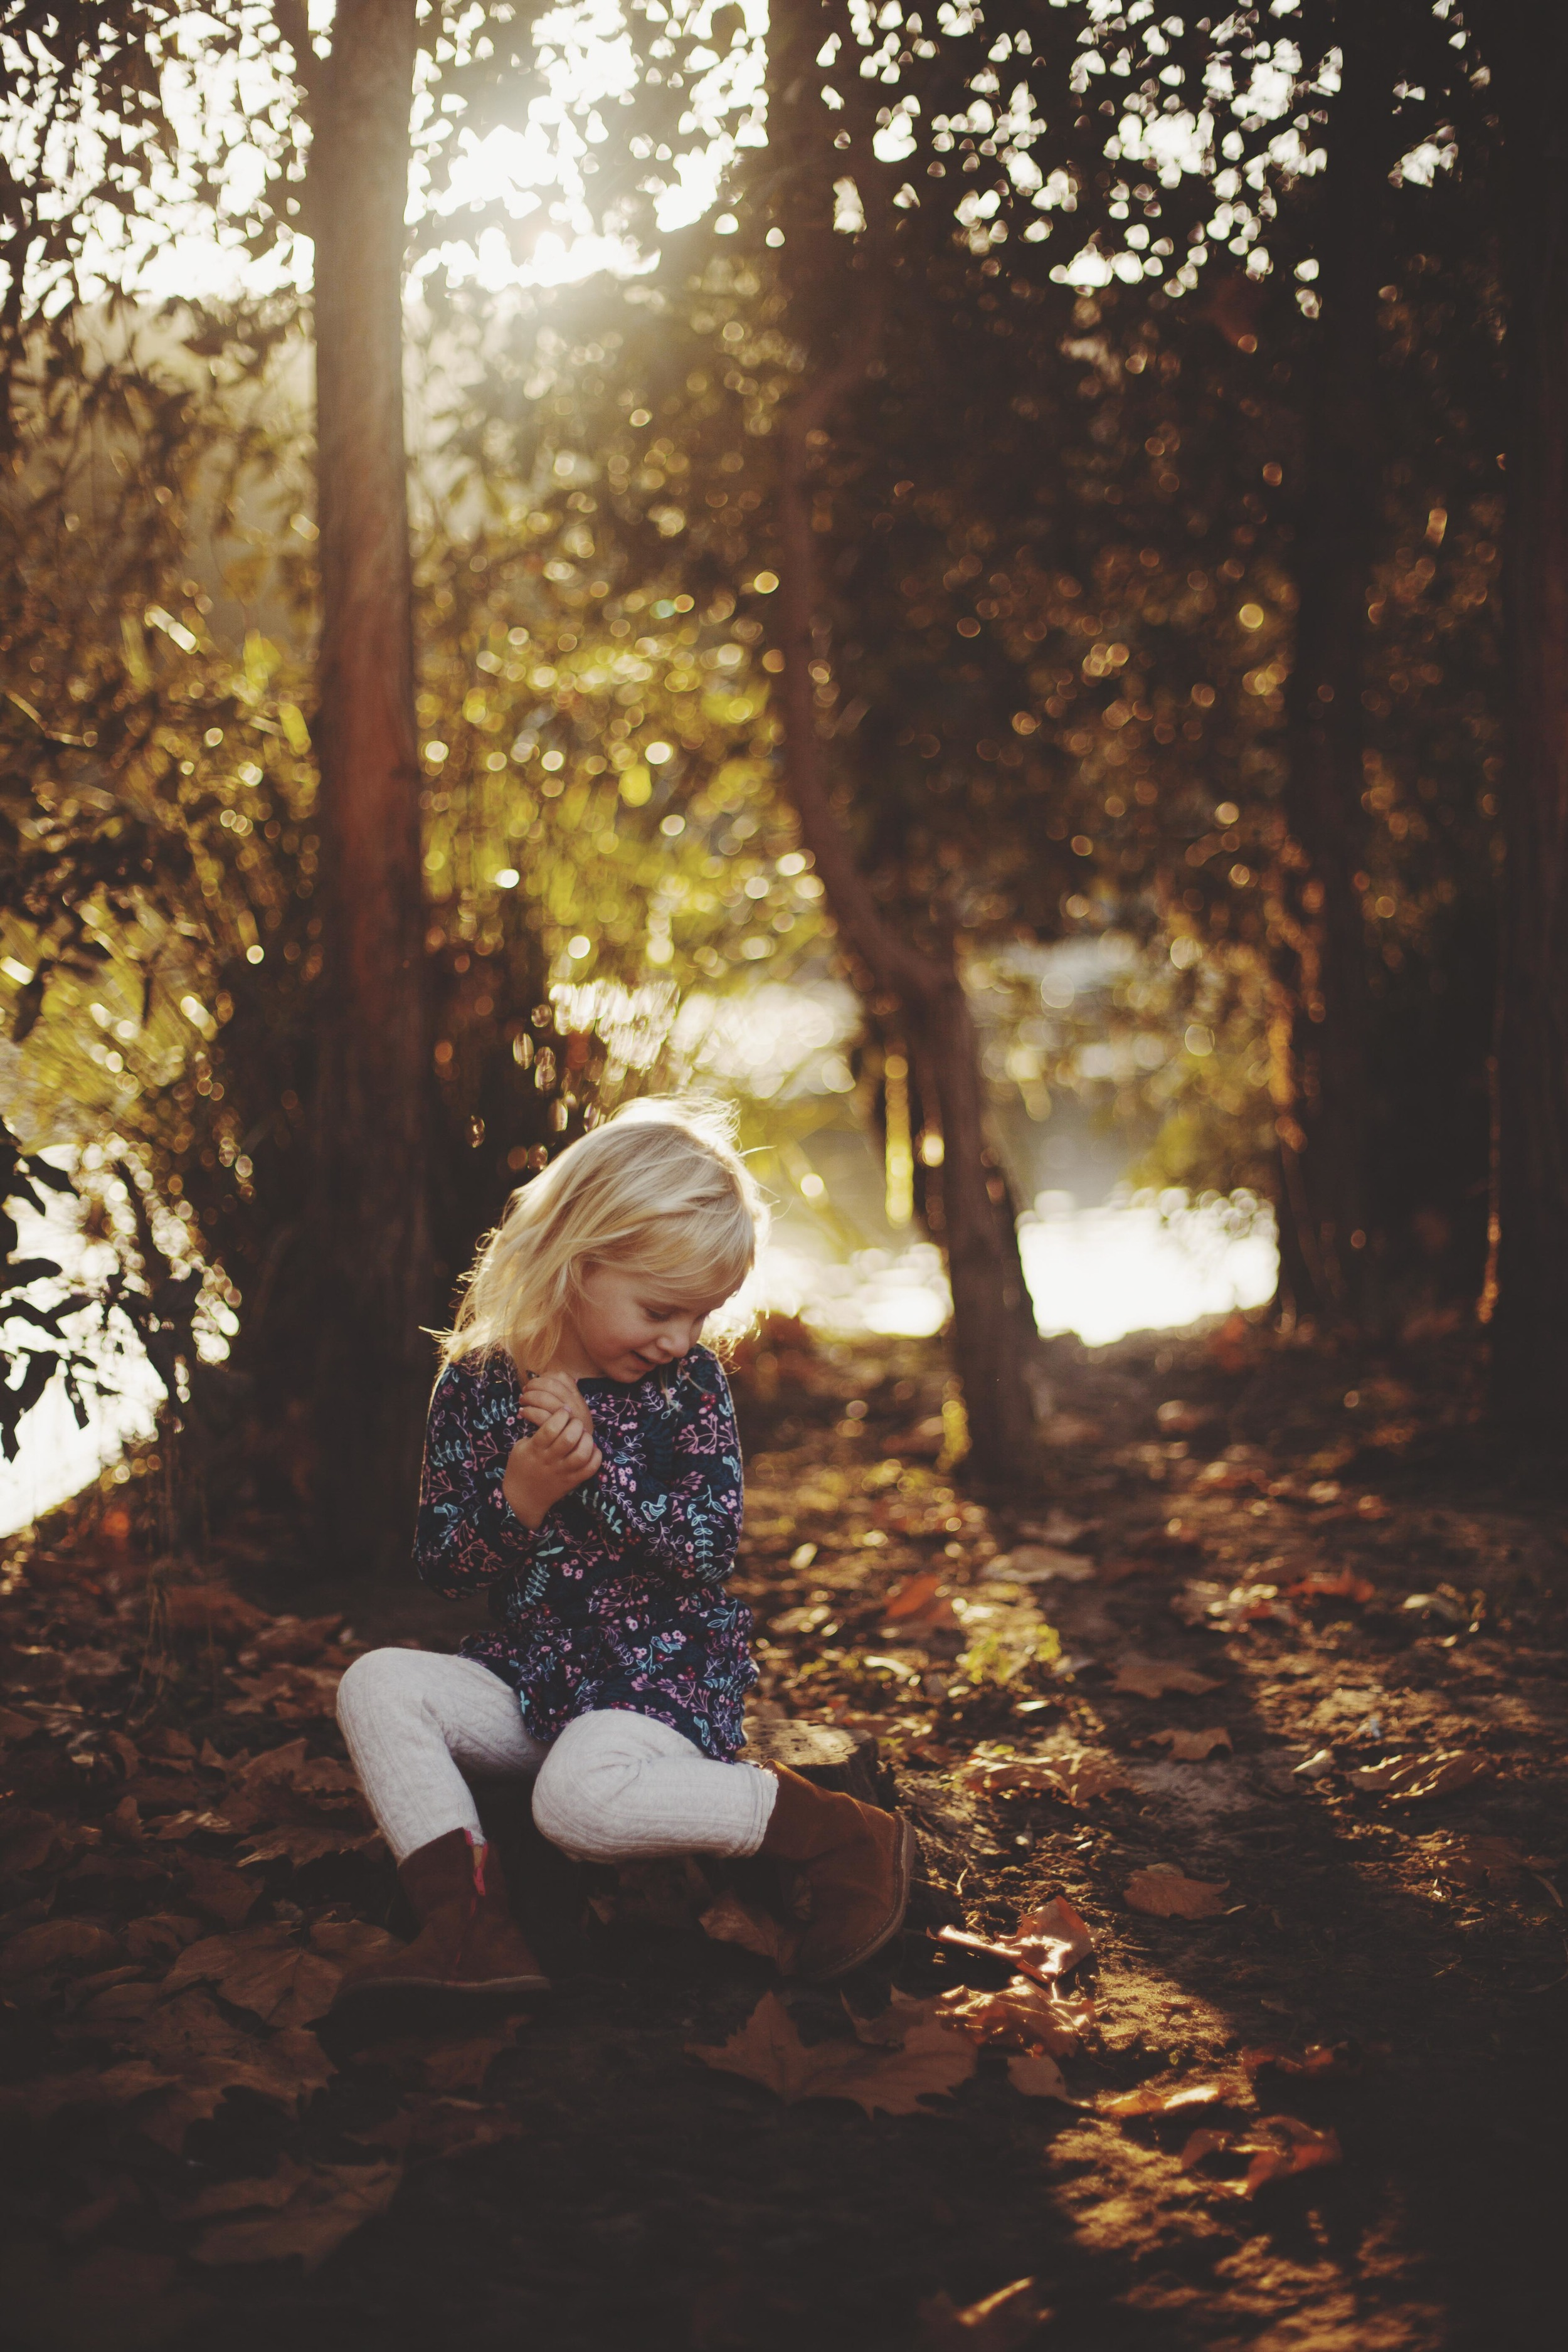 young girl sitting amongst the autumn leaves